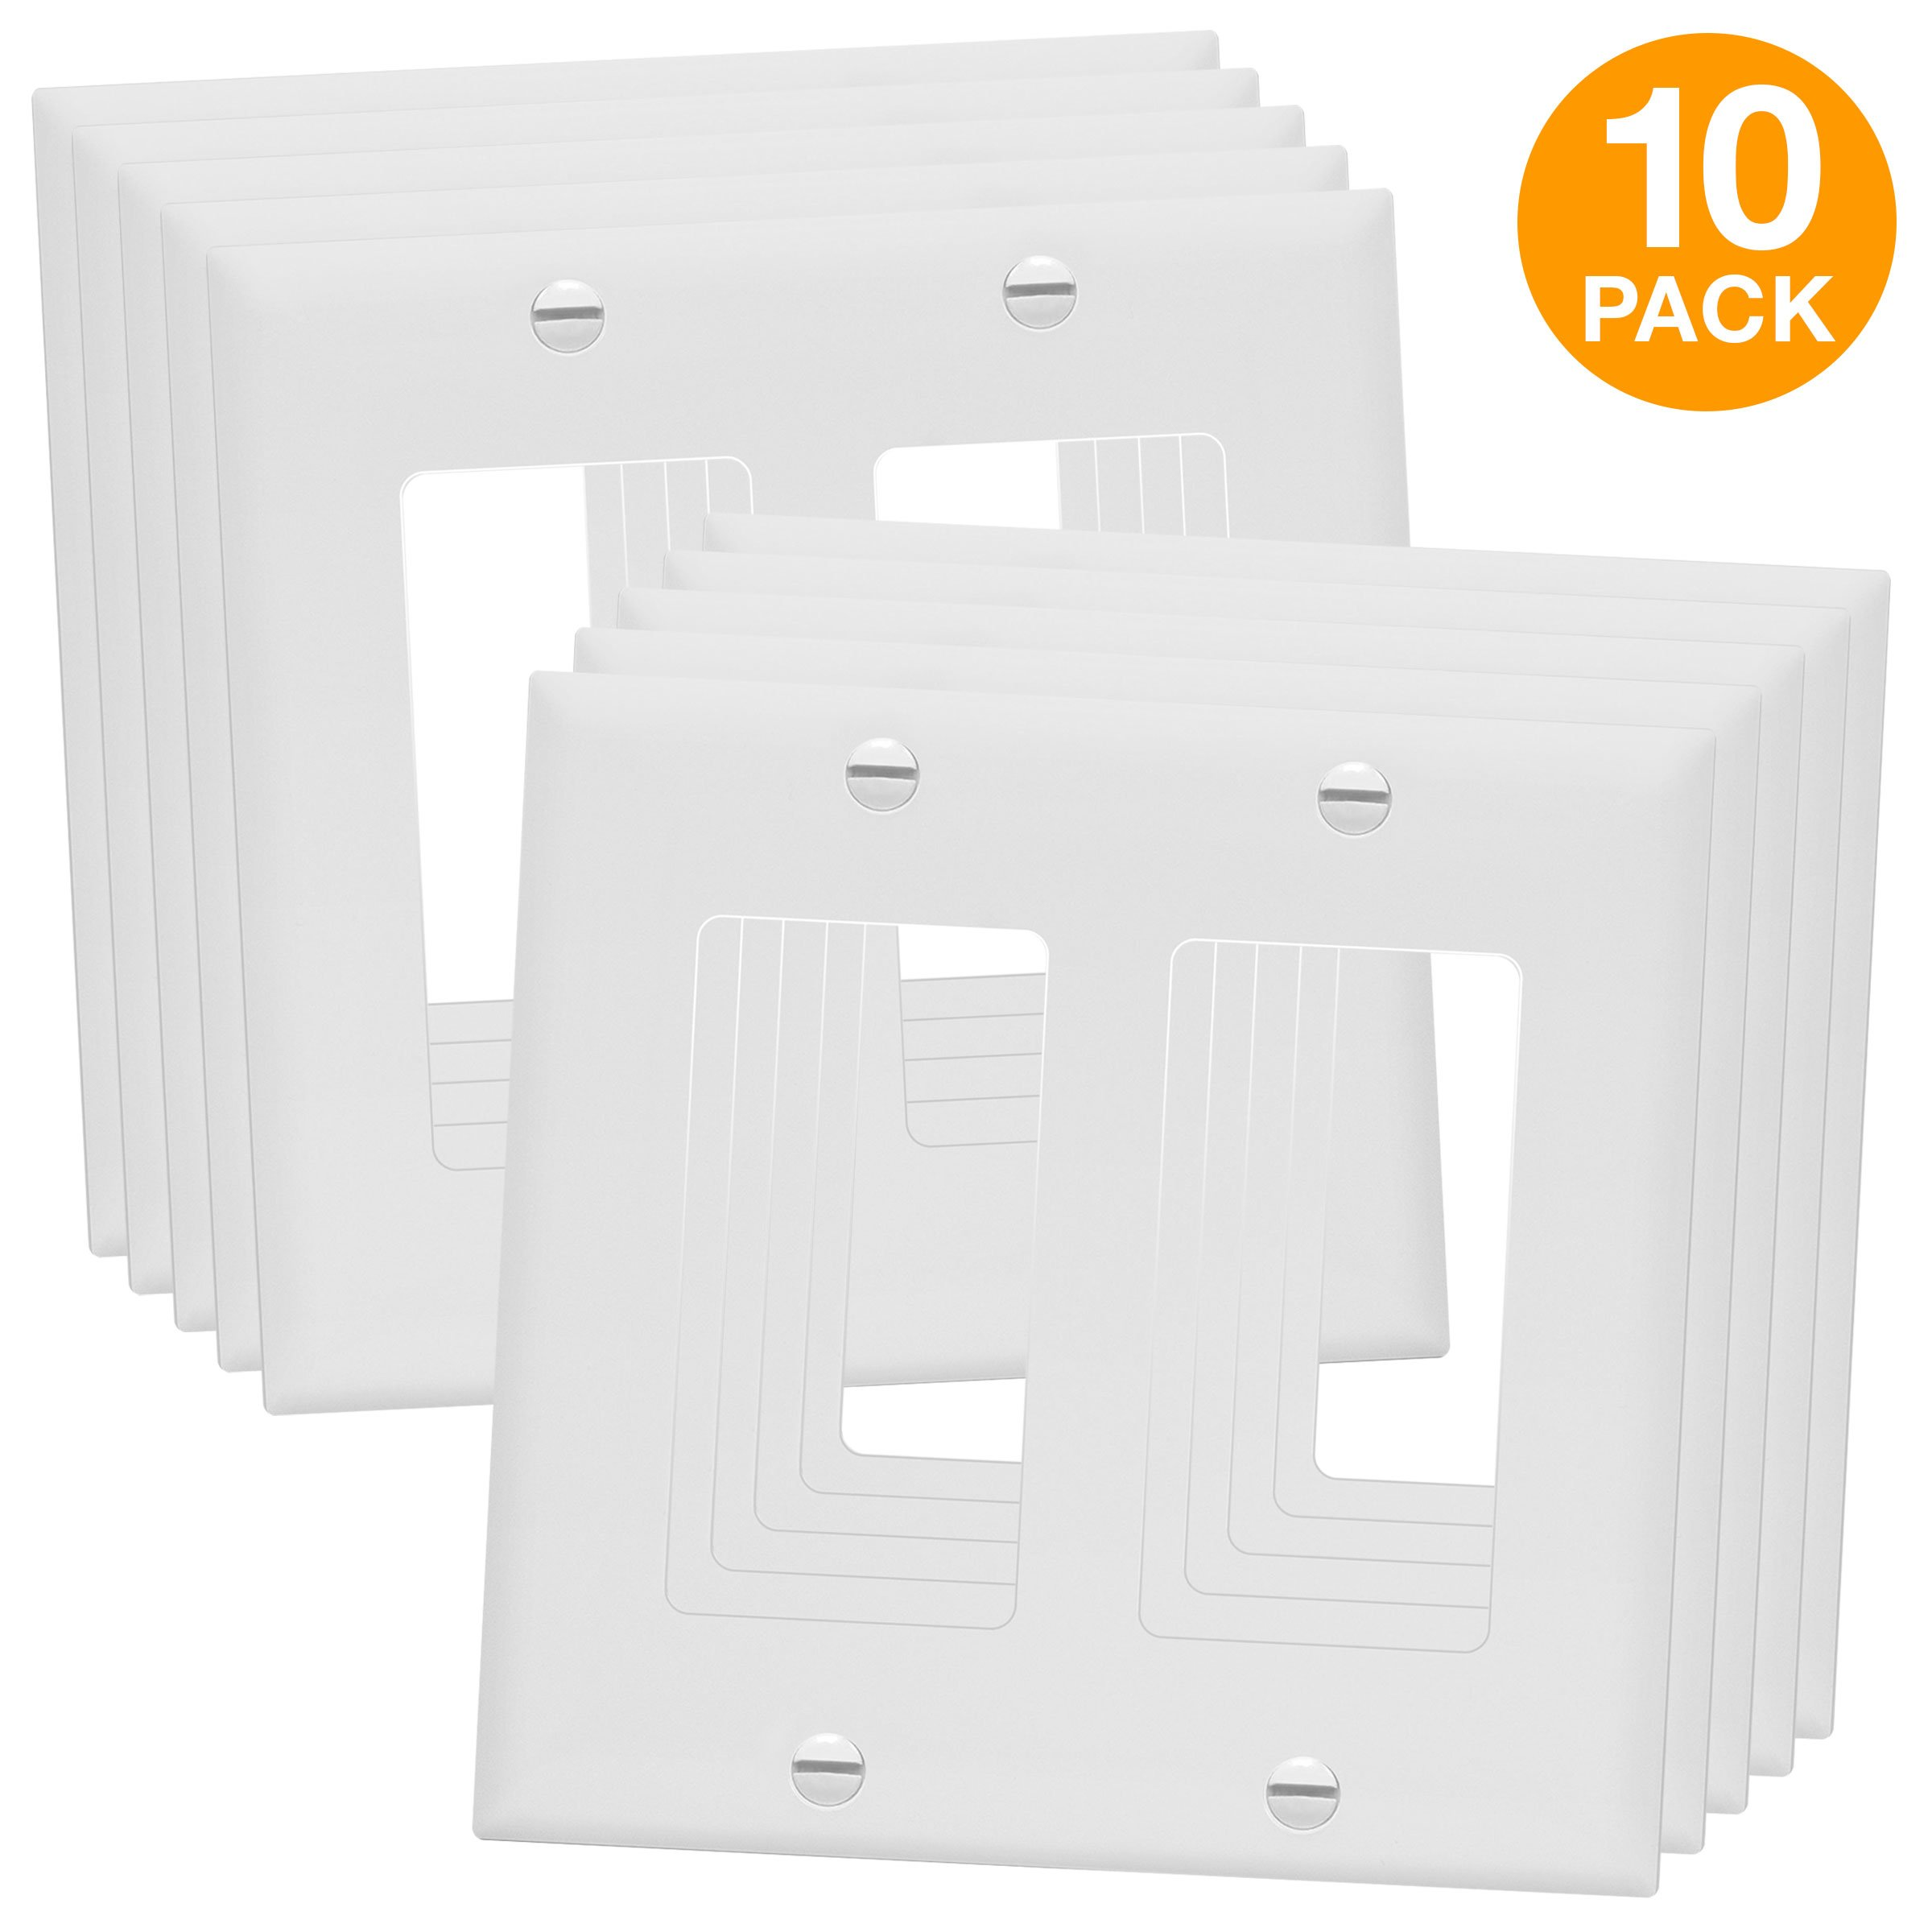 Enerlites 8832-W-10PCS Decorator Light Switch/Receptacle Outlet Wall Plate, Standard Size 2-Gang, Polycarbonate Thermoplastic,White (10 Pack) by Enerlites (Image #1)